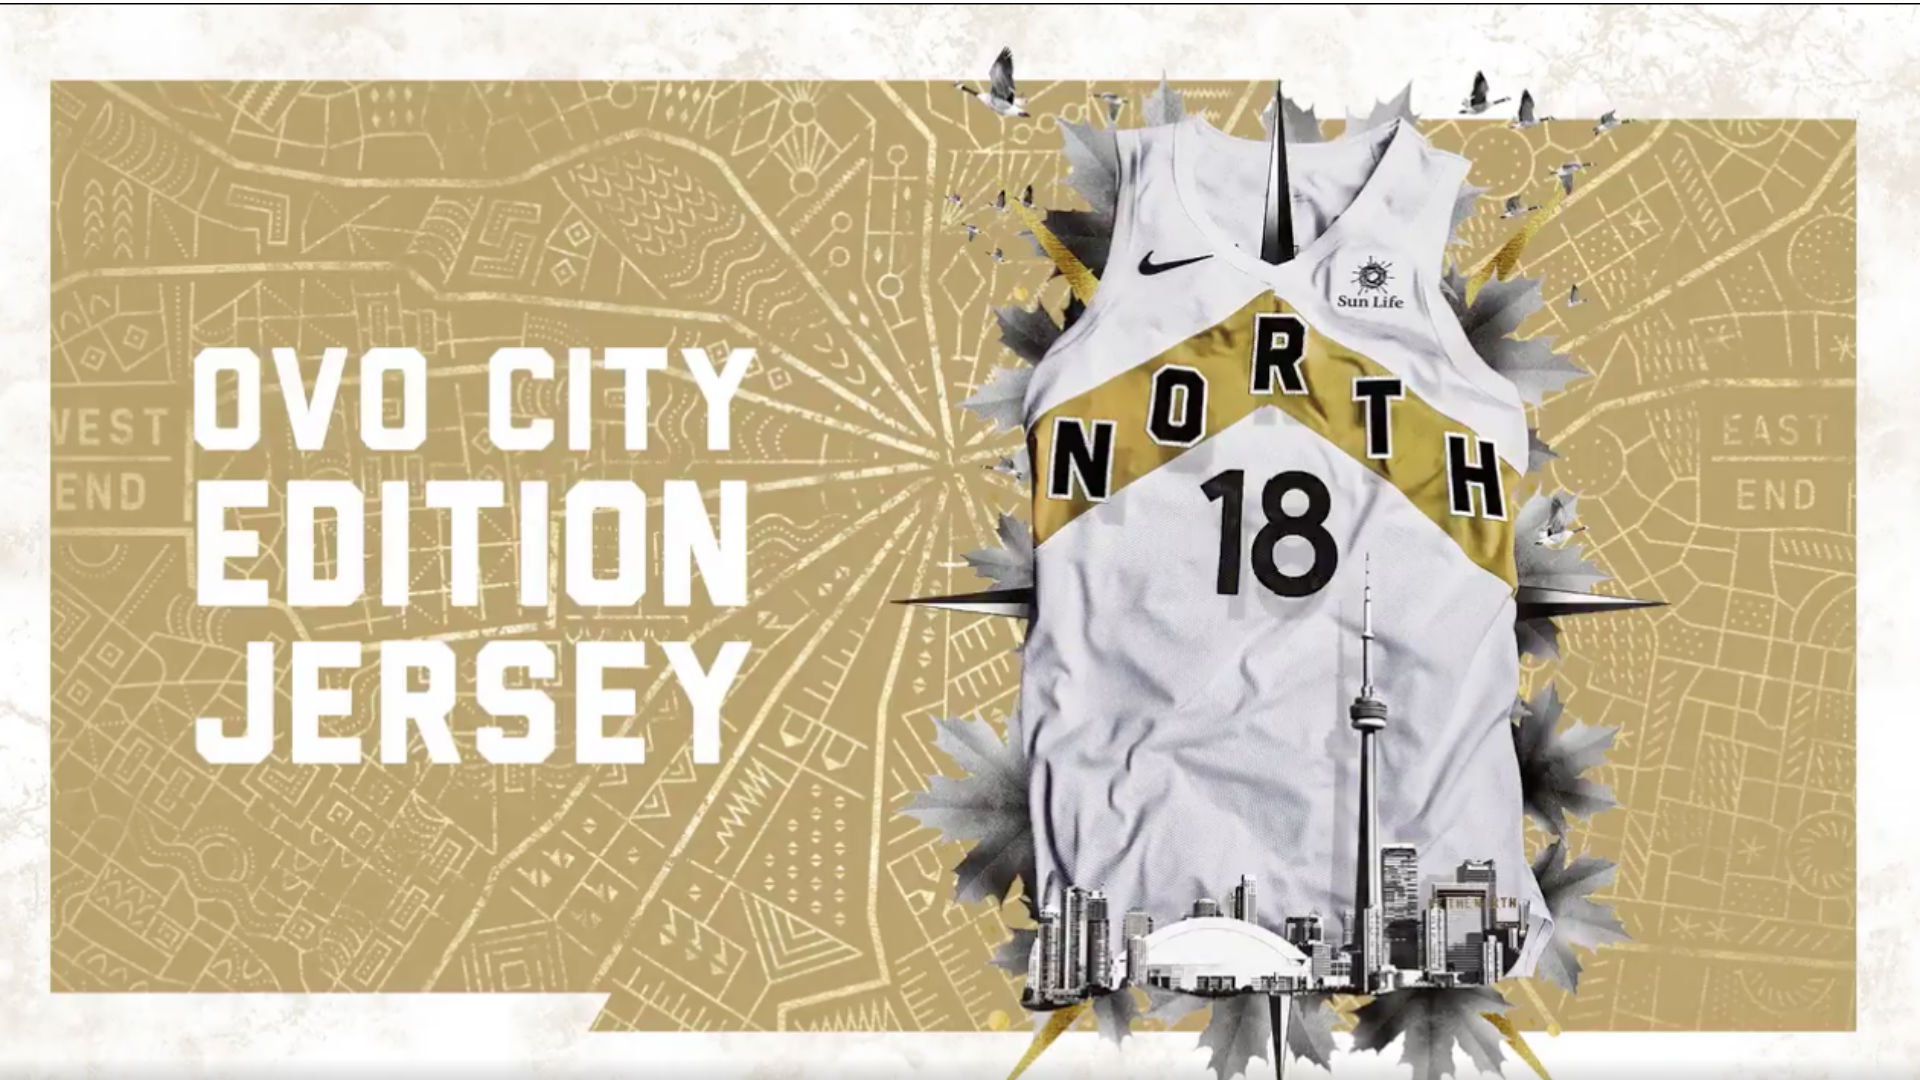 Toronto Raptors release OVO city edition jerseys and  Welcome Toronto   nights  373fc0601